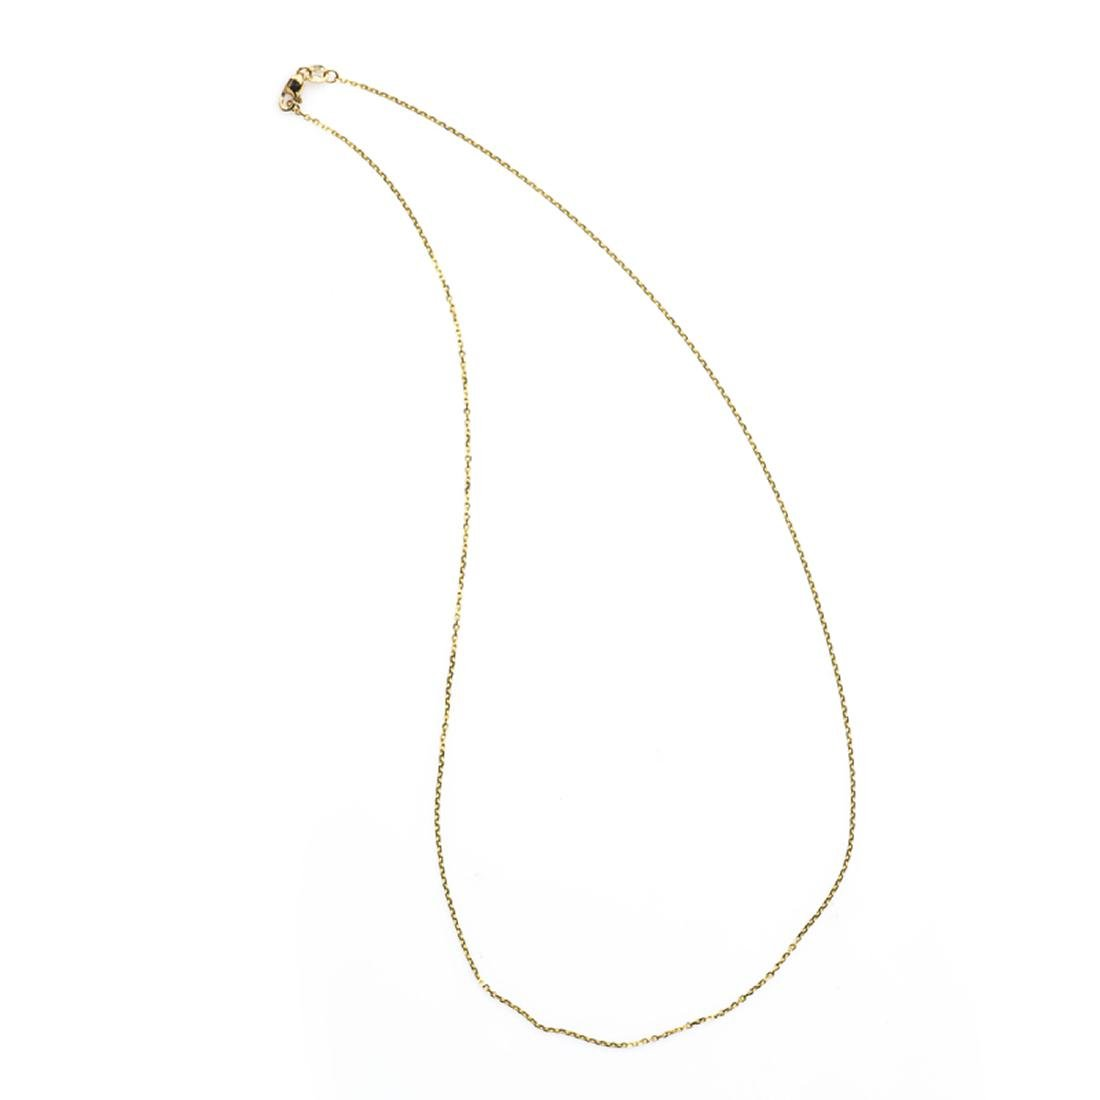 *Fine Jewelry 14KT Gold, Diamond Cut, 1.8GR. 18'' Chain